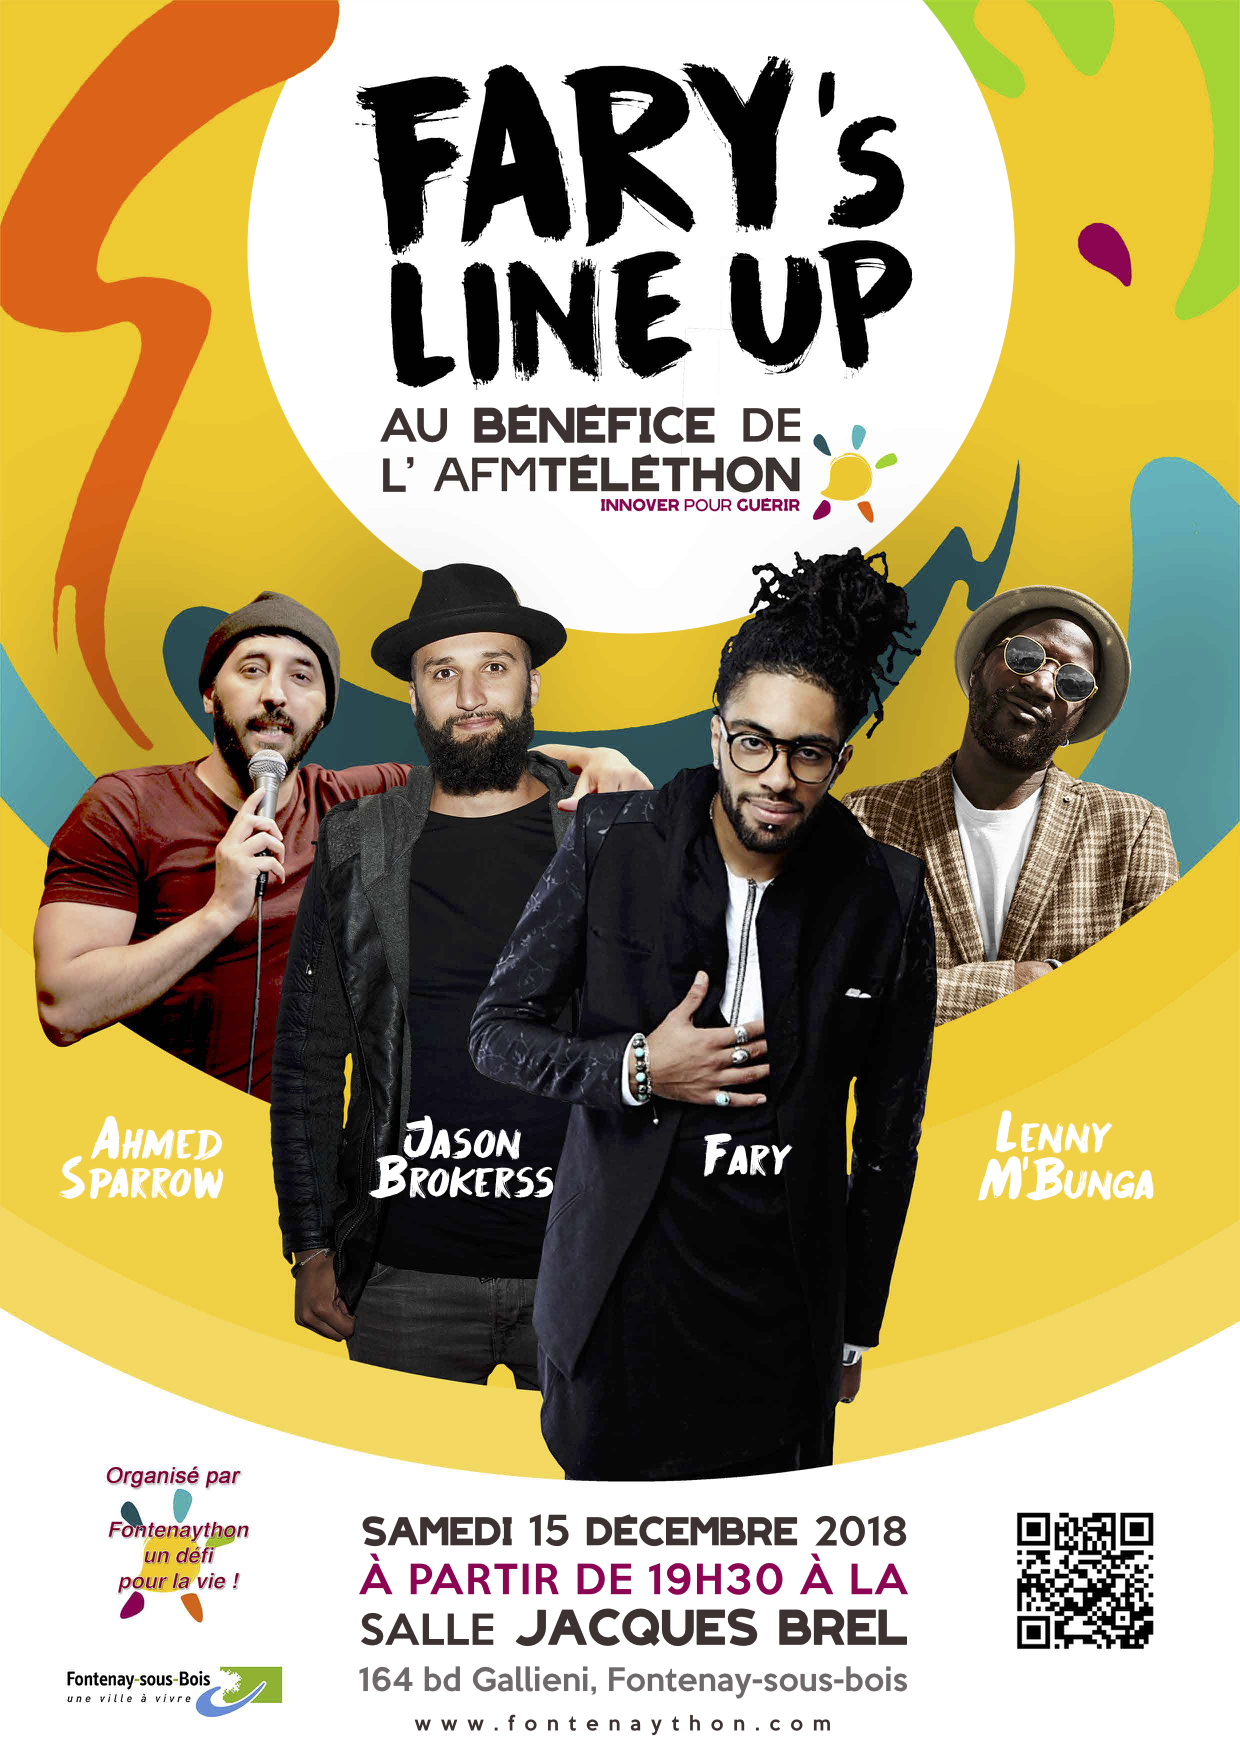 Grand spectacle 2018 du Fontenaython - Fary's line up